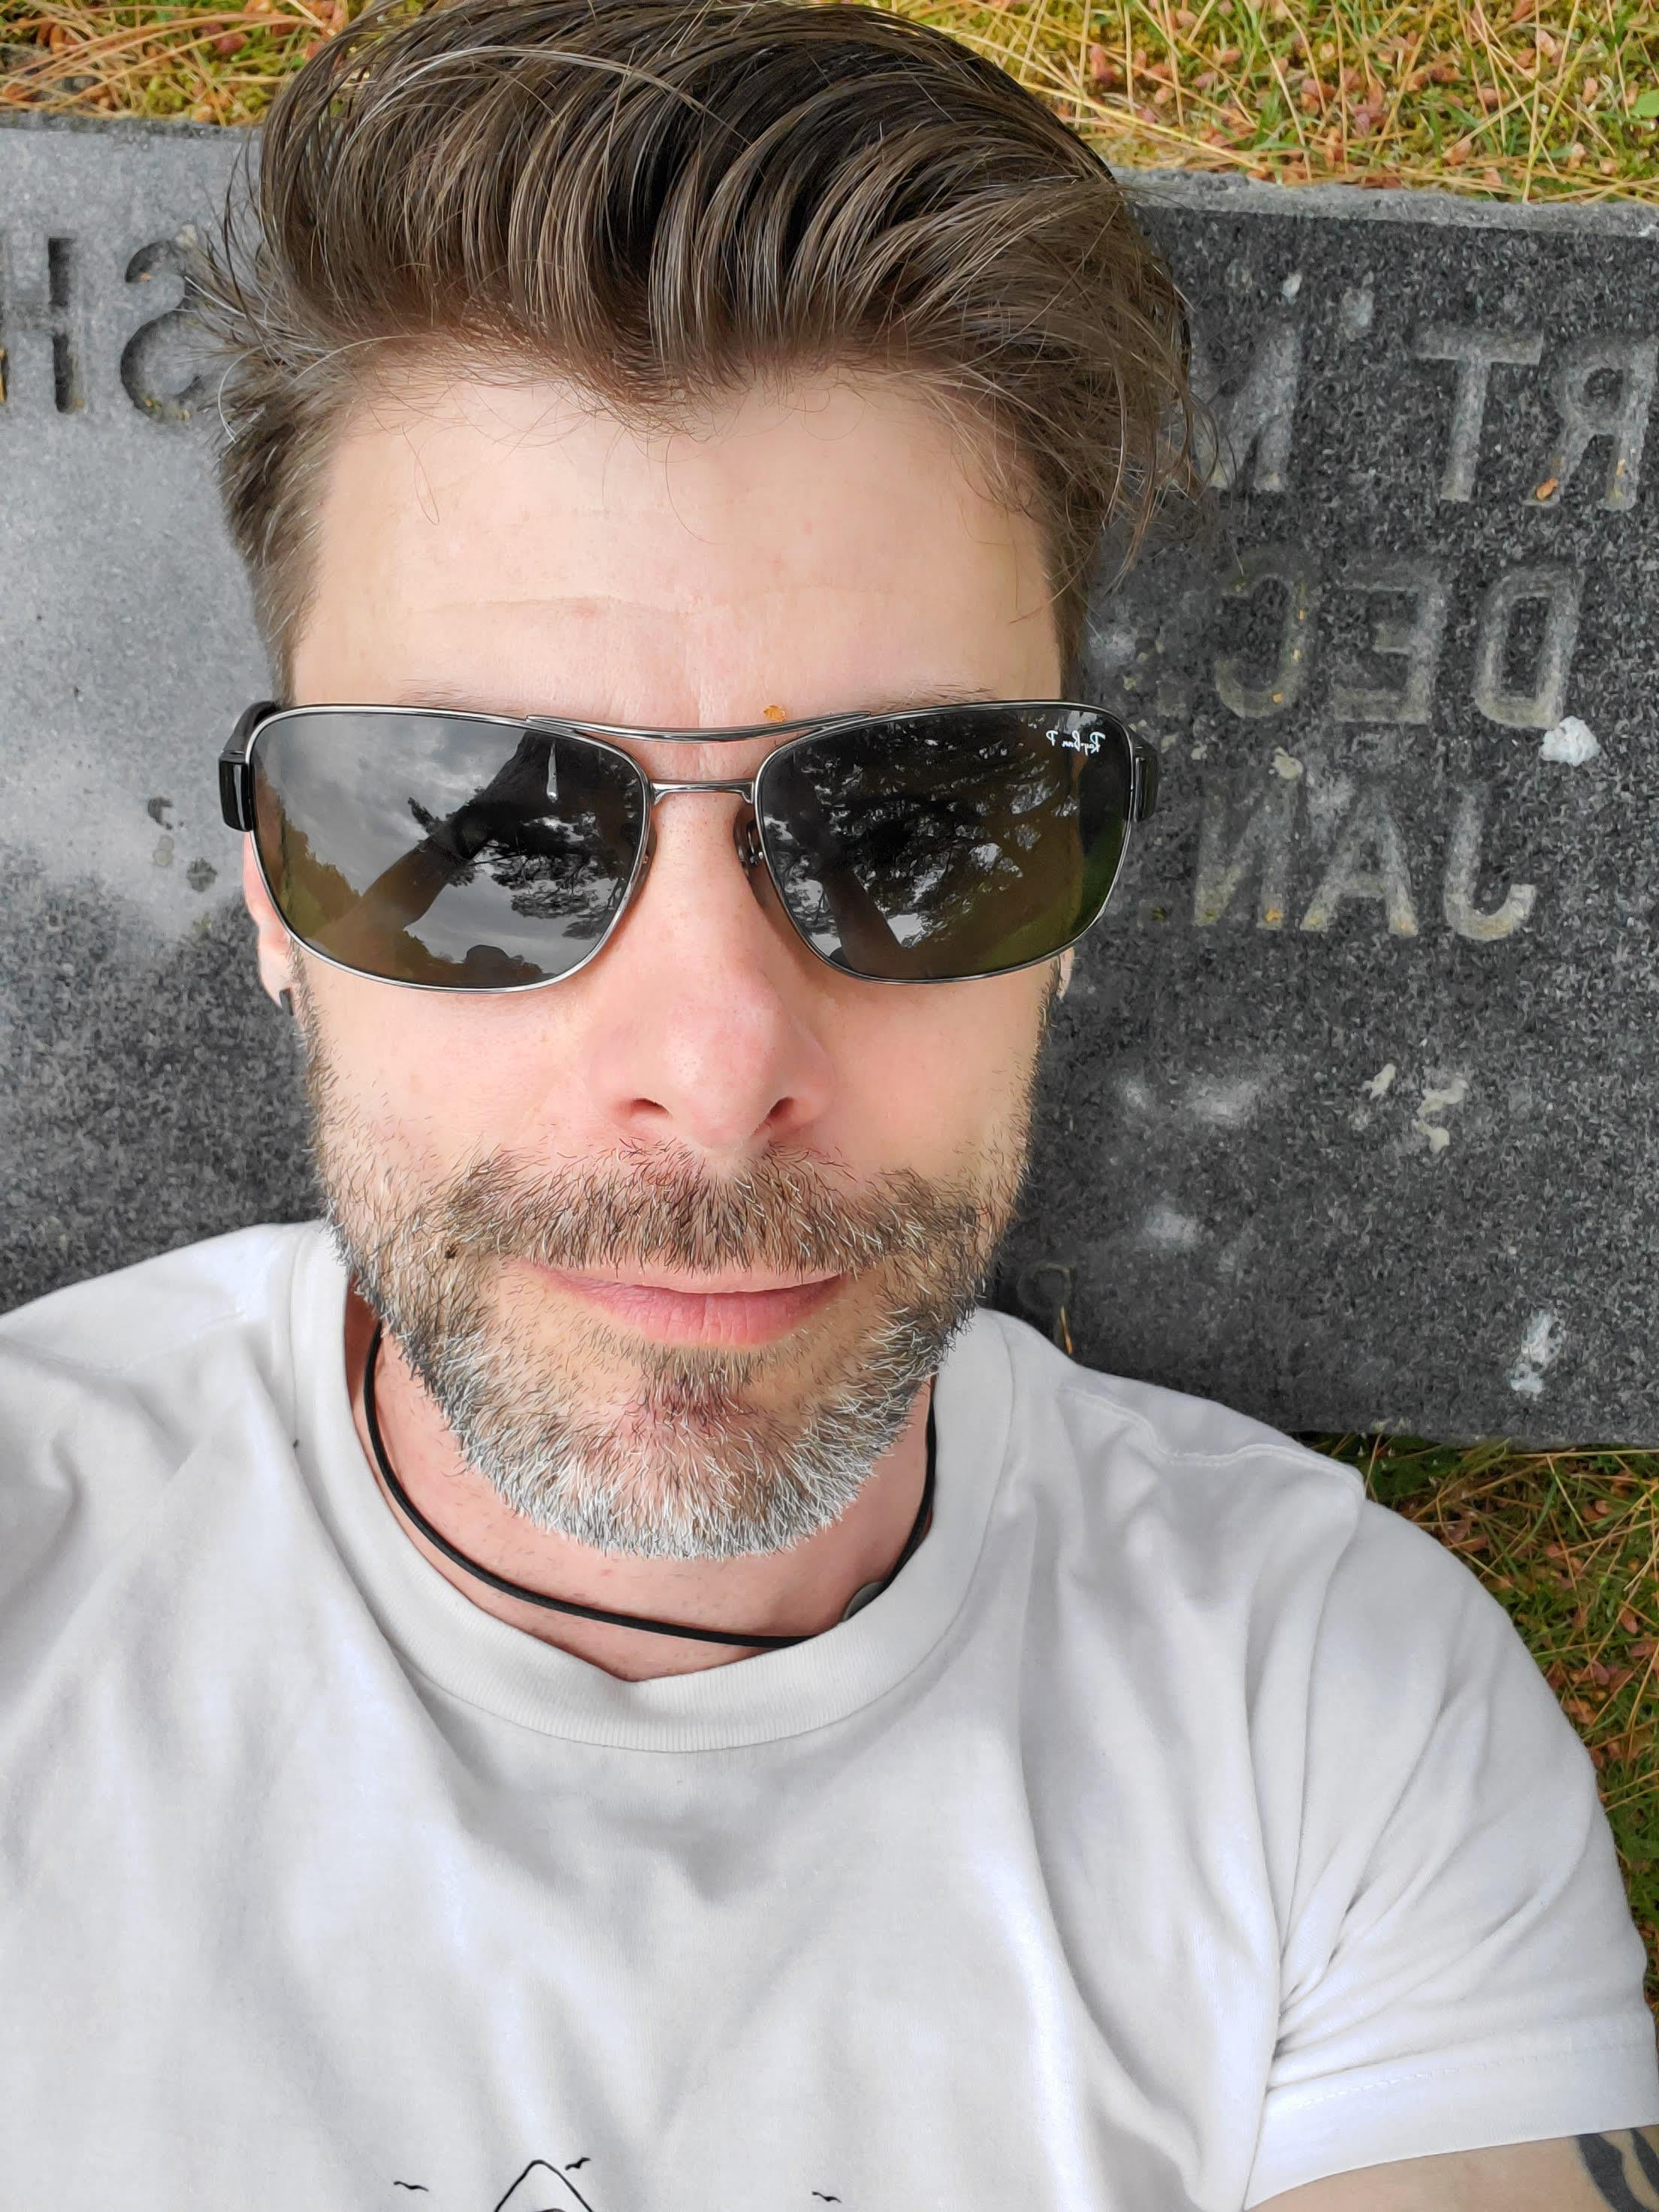 The pillow of my Dad's grave - sunglasses hiding the tears